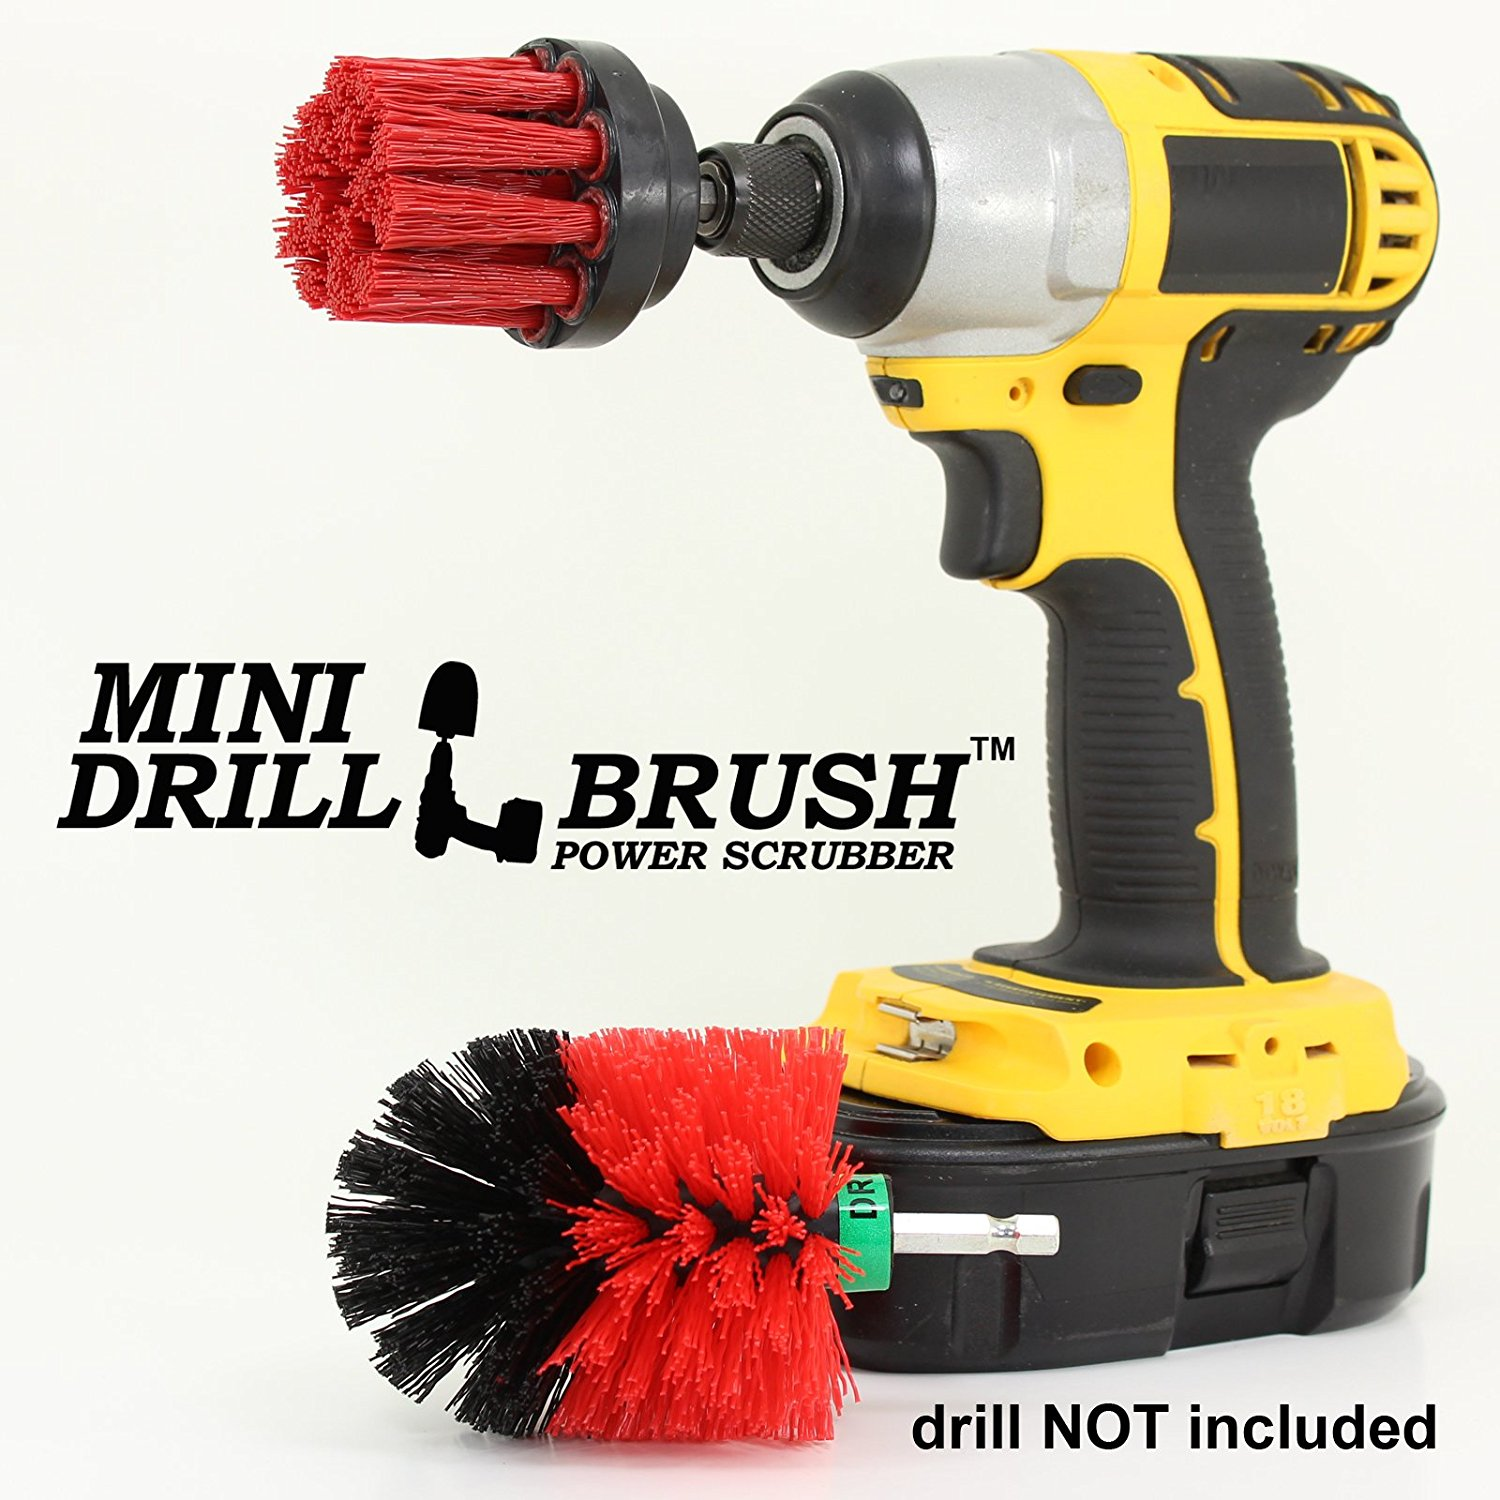 Mini Size Power Scrubber Stiff Scrub Brush 2inch Diameter Stiff Brush for Tight Spaces by Drillbrush